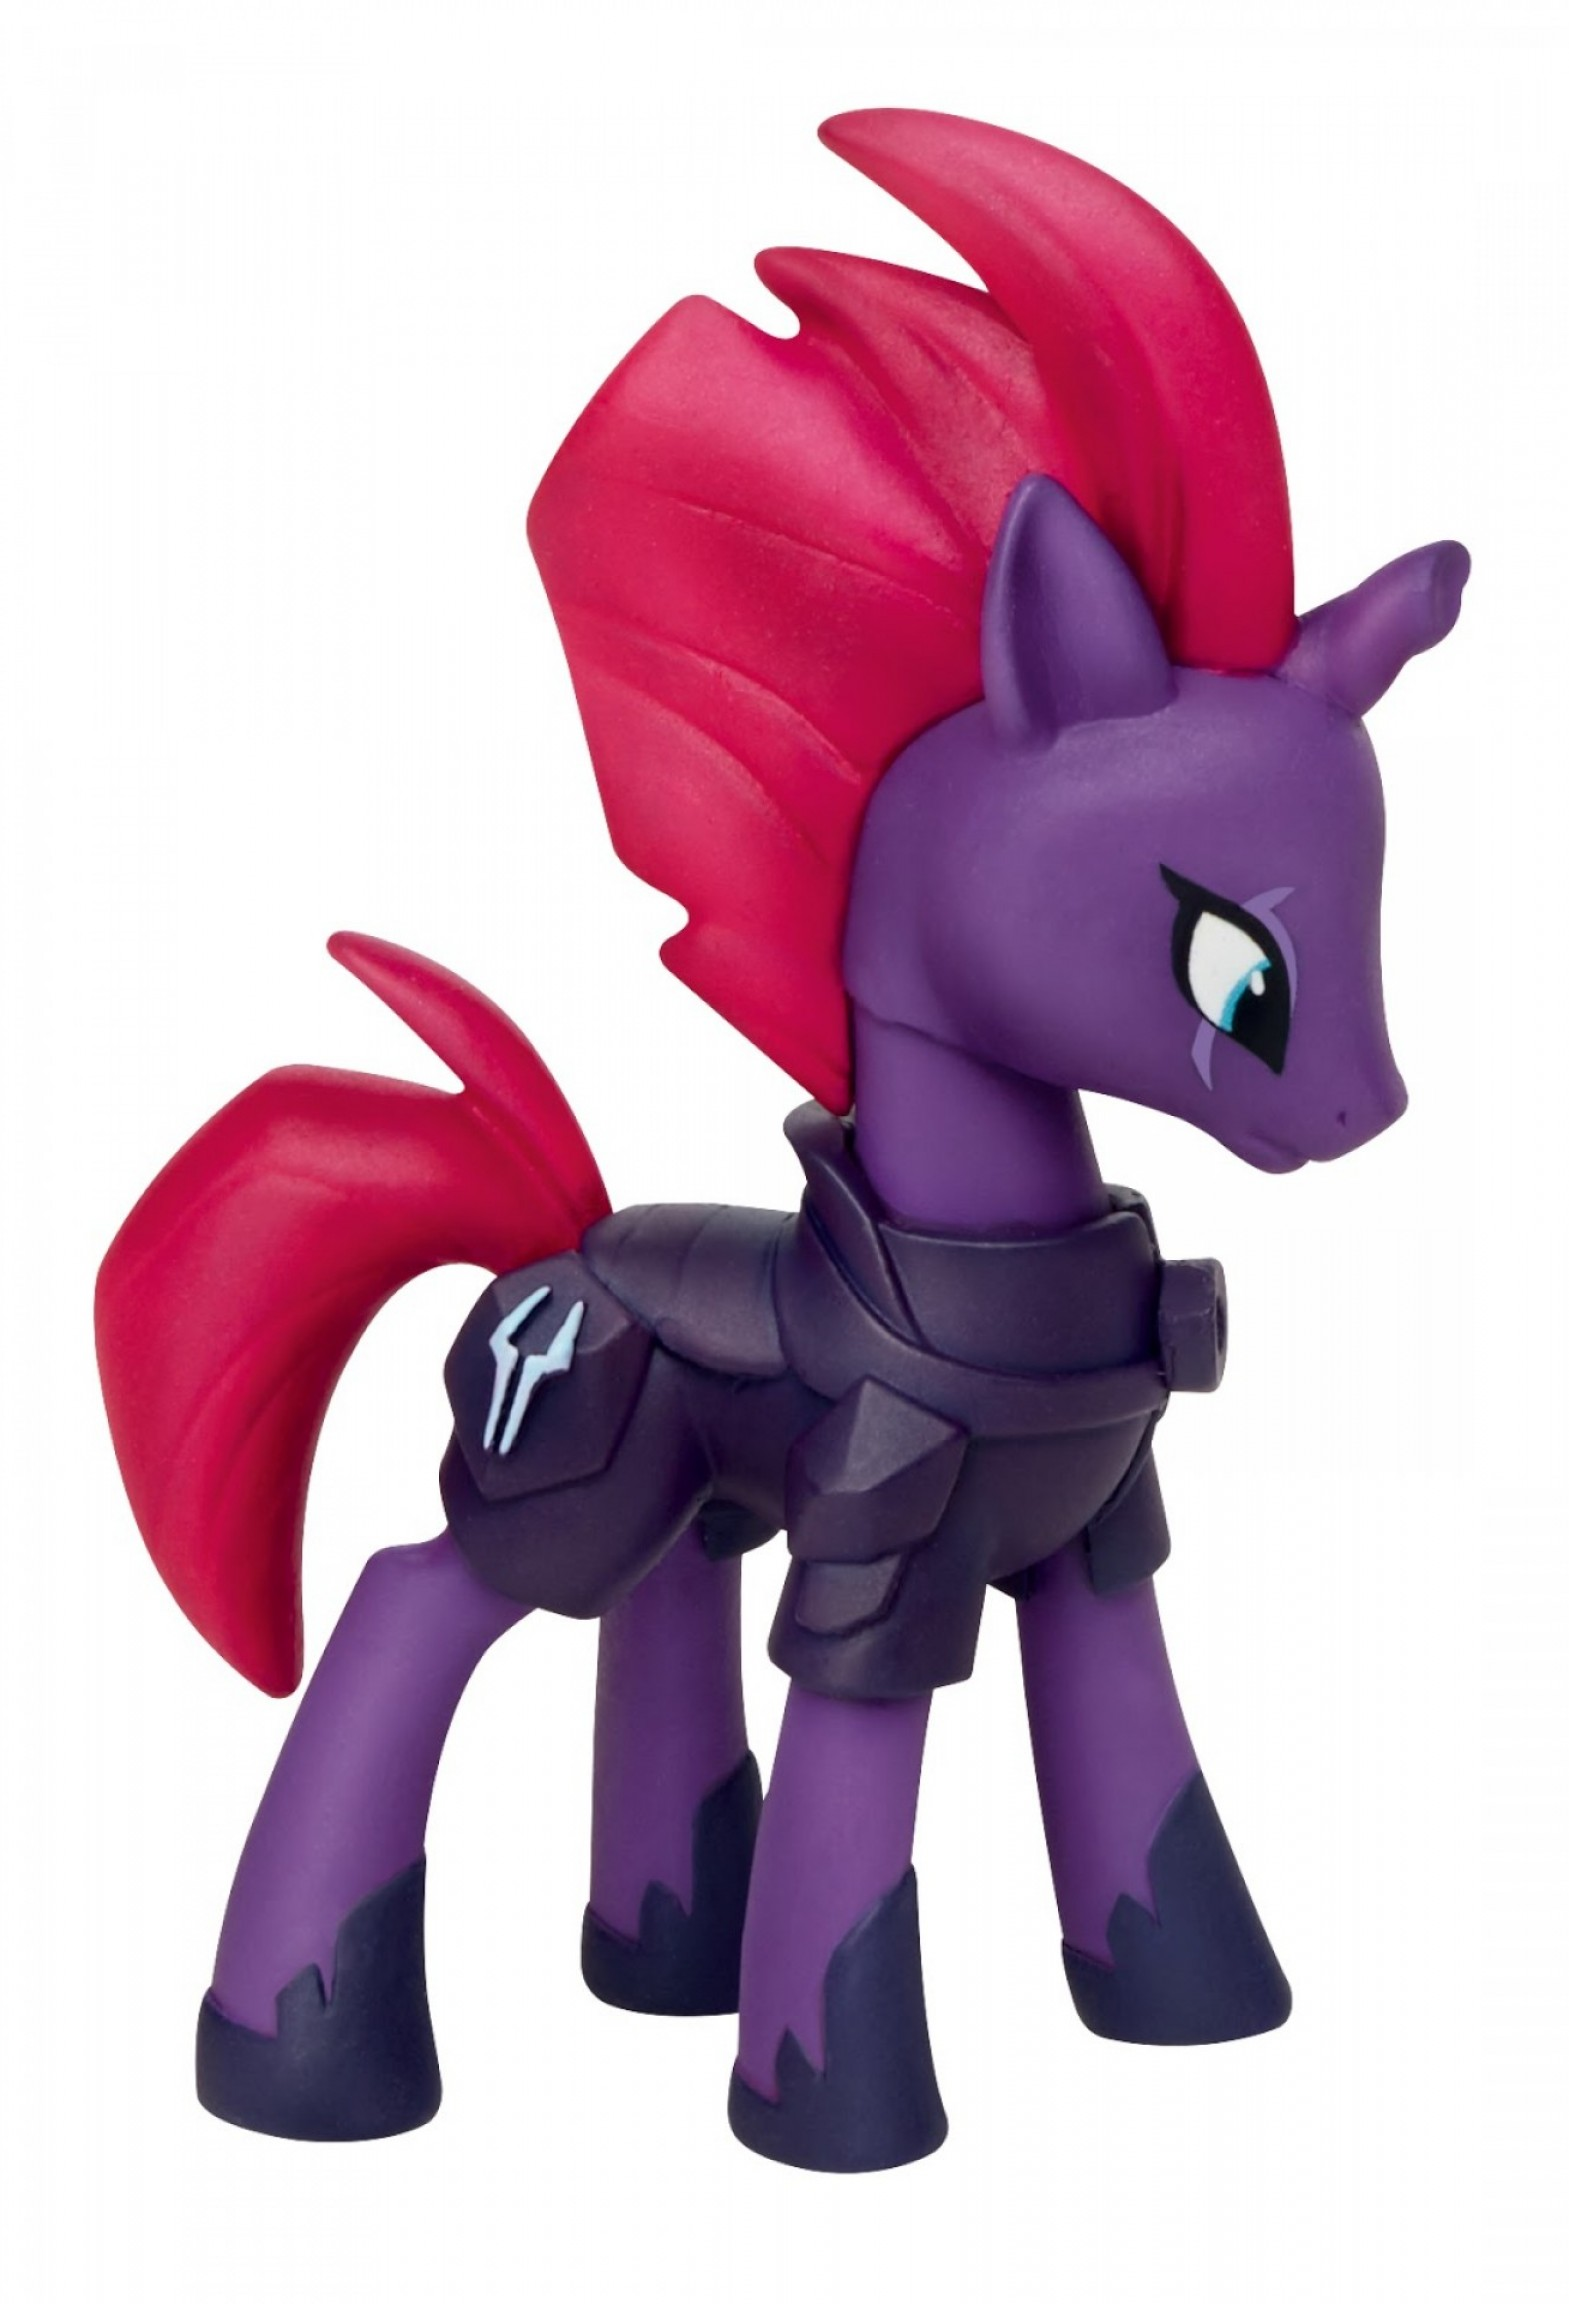 MLP OC Vector Family: More Awesome Toys From My Little Pony